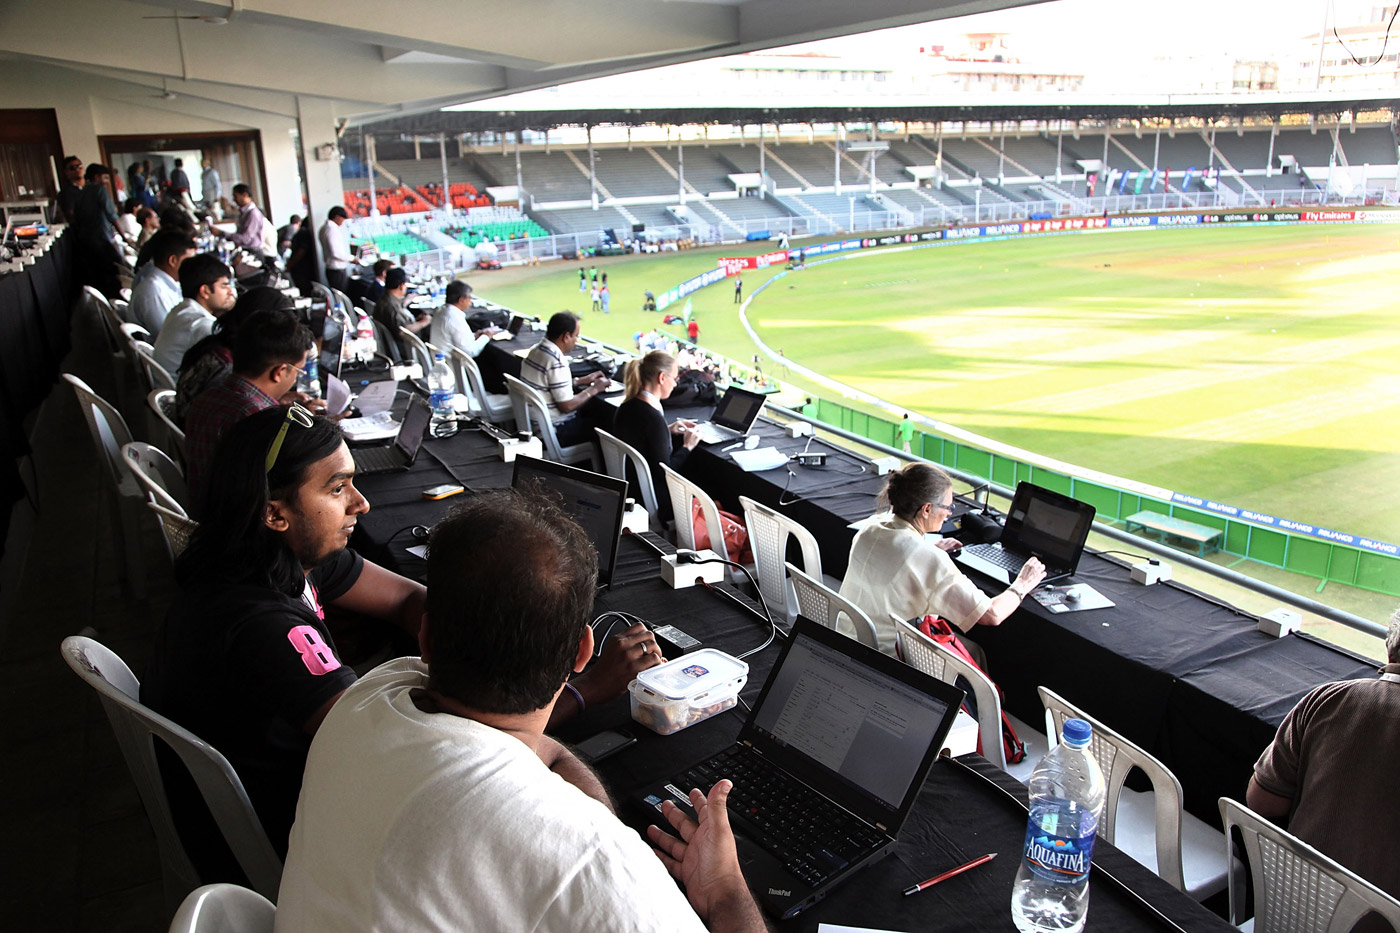 The audiences they cater to may have widened but press boxes, even today, aren't spaces where diversity thrives